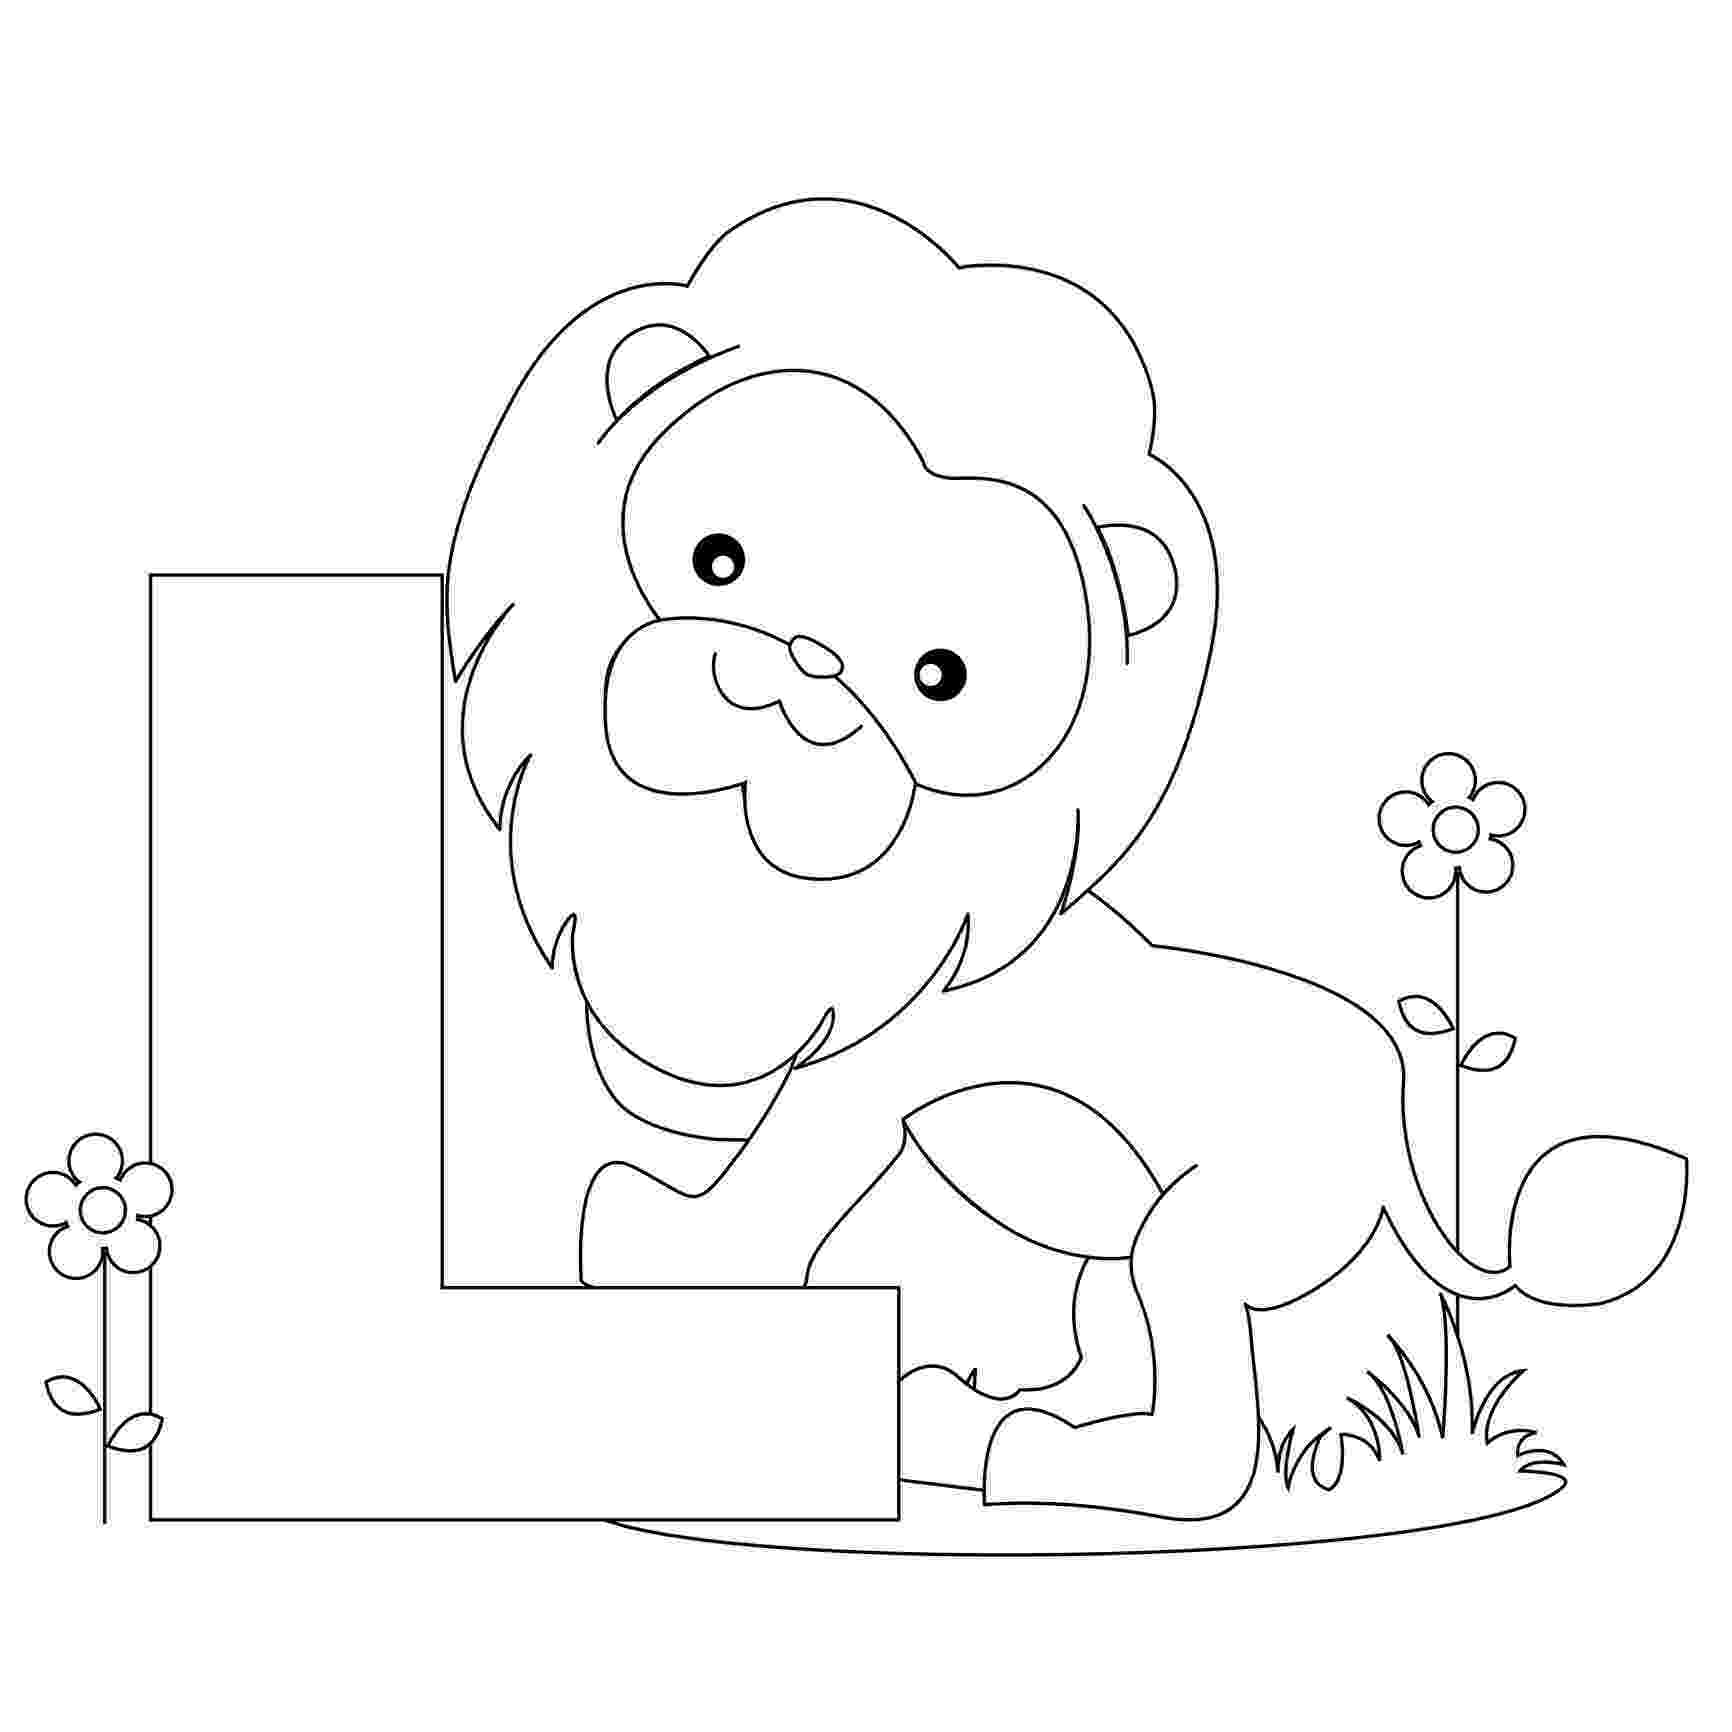 alphabet coloring worksheets free printable alphabet coloring pages for kids best worksheets alphabet coloring